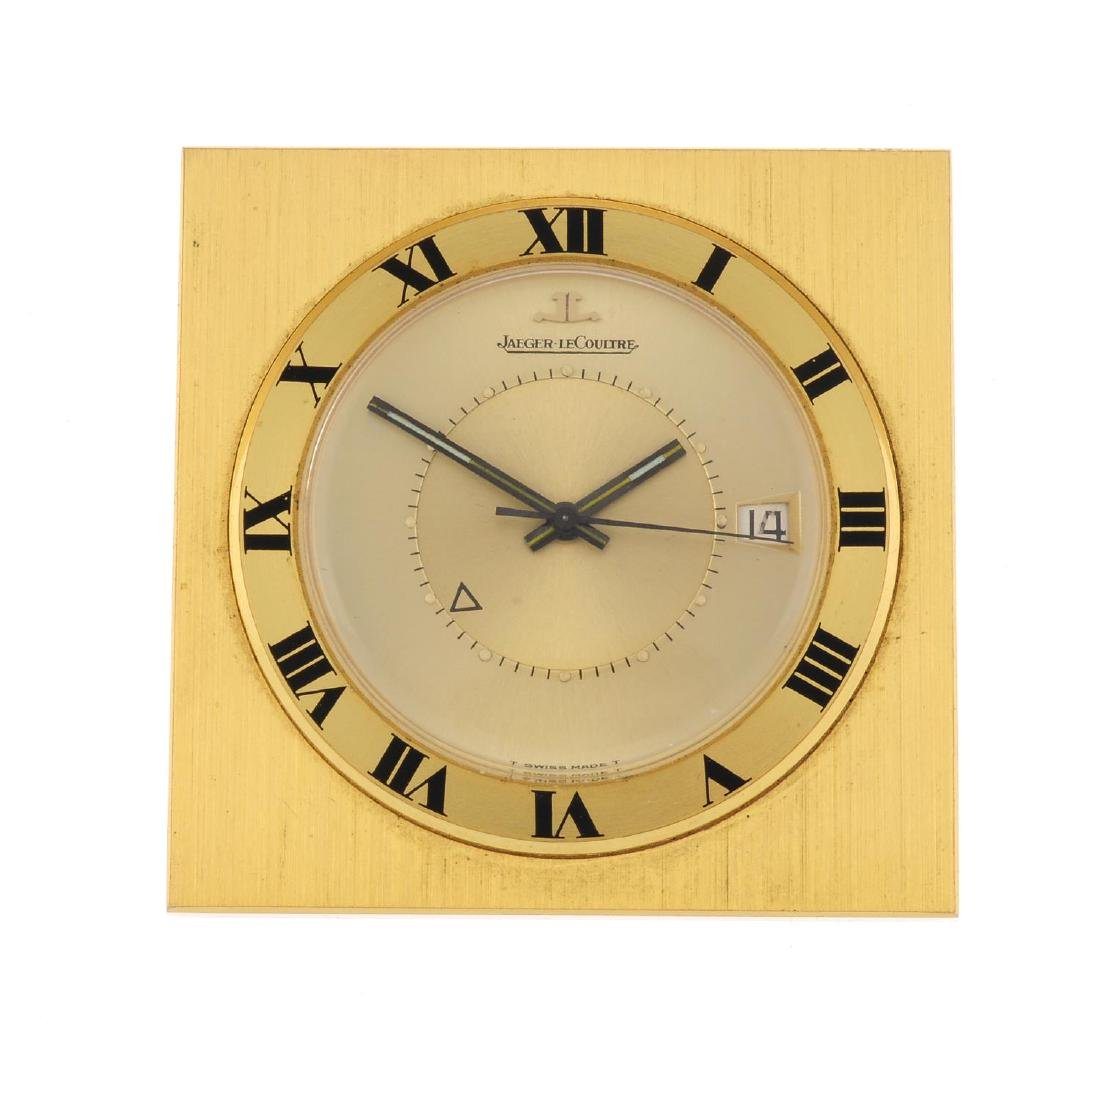 A travel alarm clock by Jaeger-LeCoultre. Gold plated